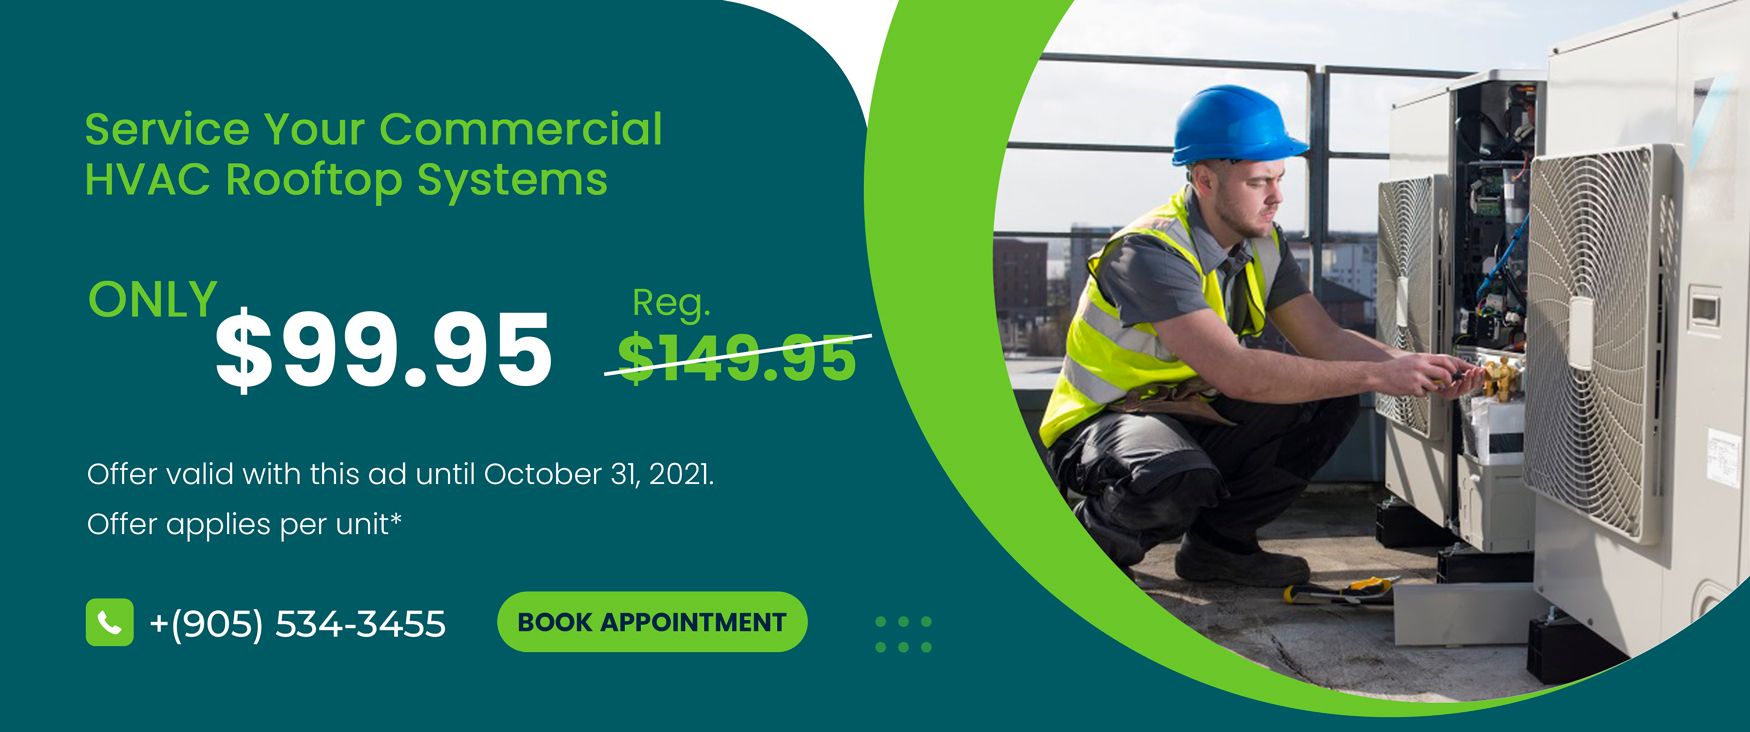 Commercial hvac rooftop service or inspection for only $129 up to 5 tons*